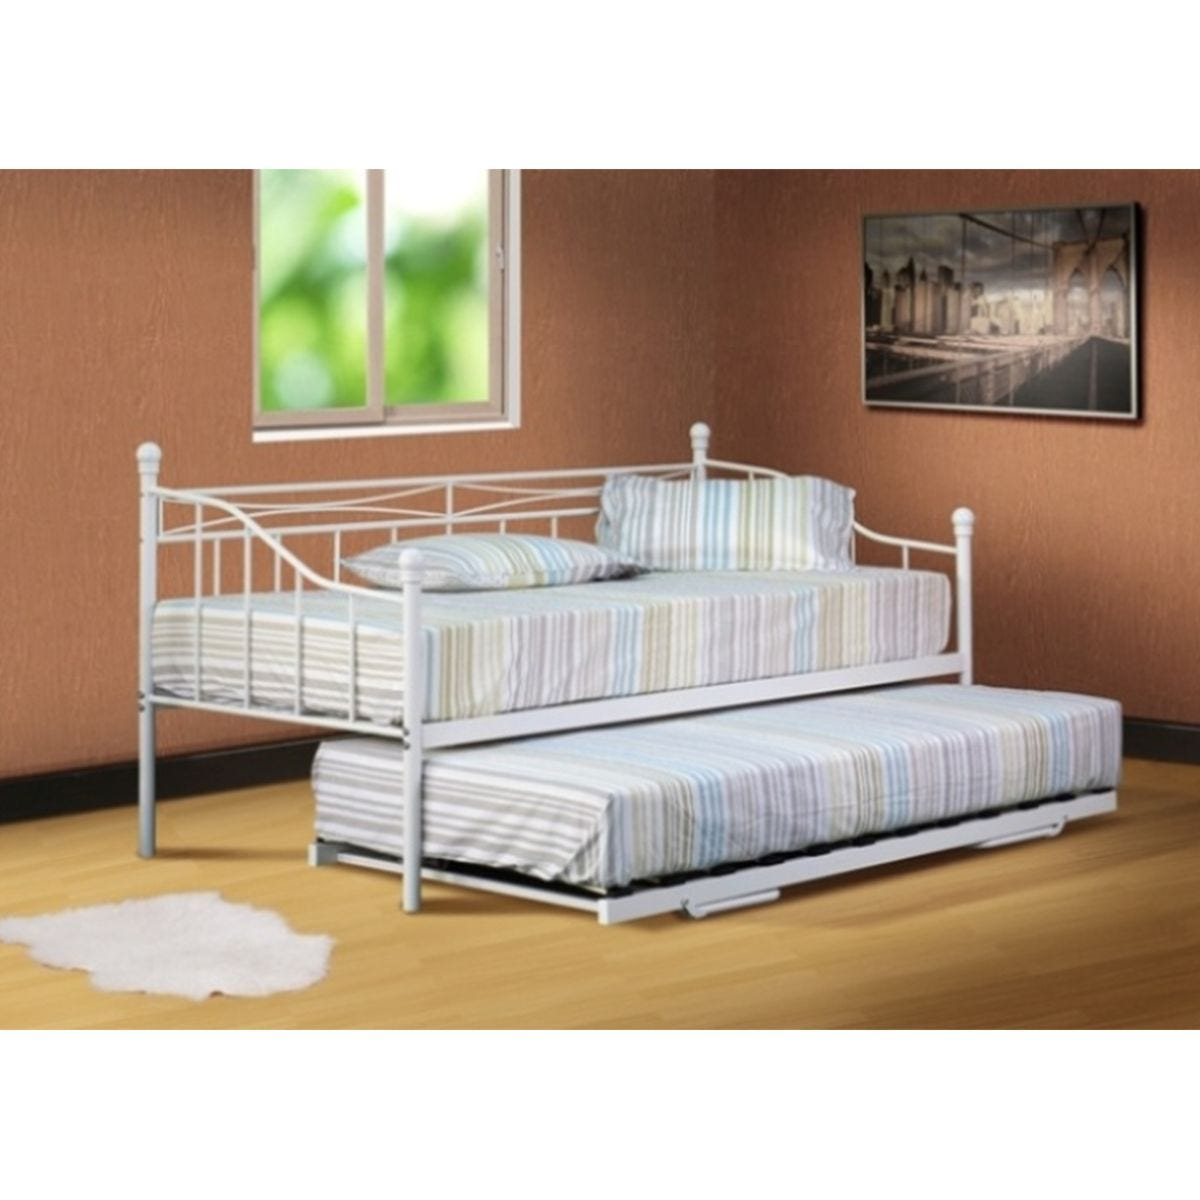 Alicia Small Single Day Bed Without Trundle White